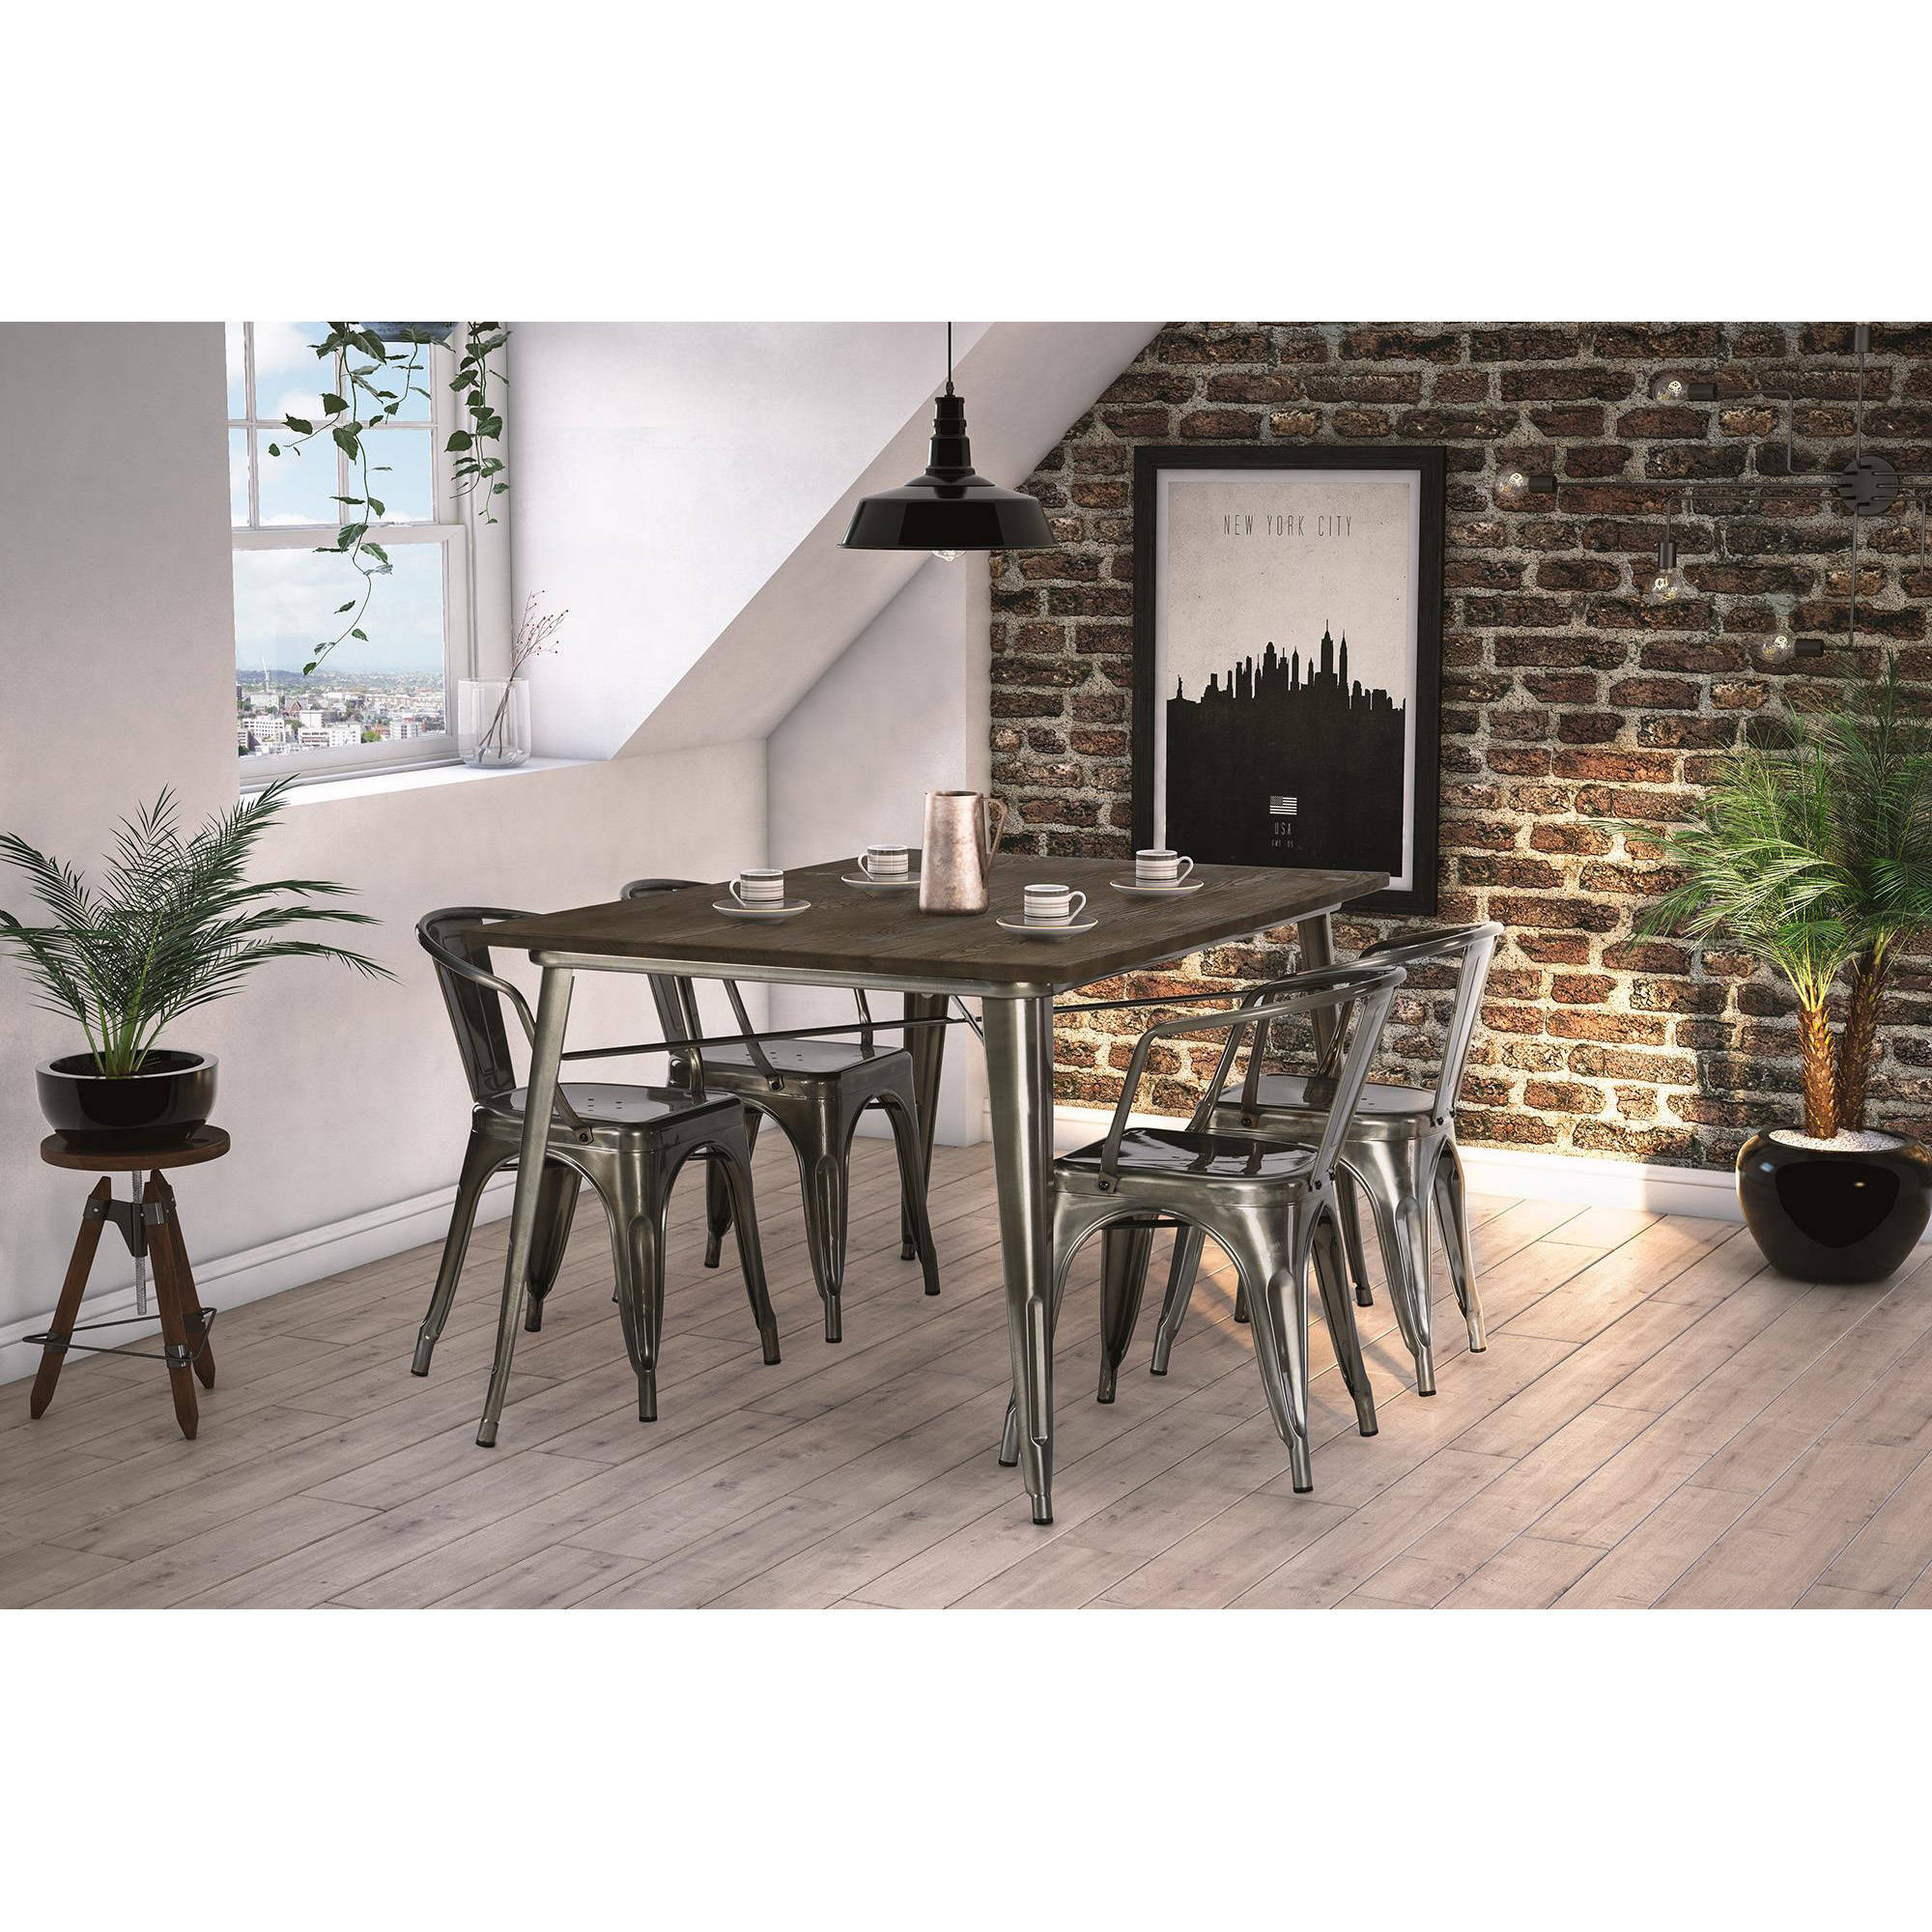 DHP Fusion Dining Table, Rectangular, Antique Gun Metal Wood by Dorel Home Products